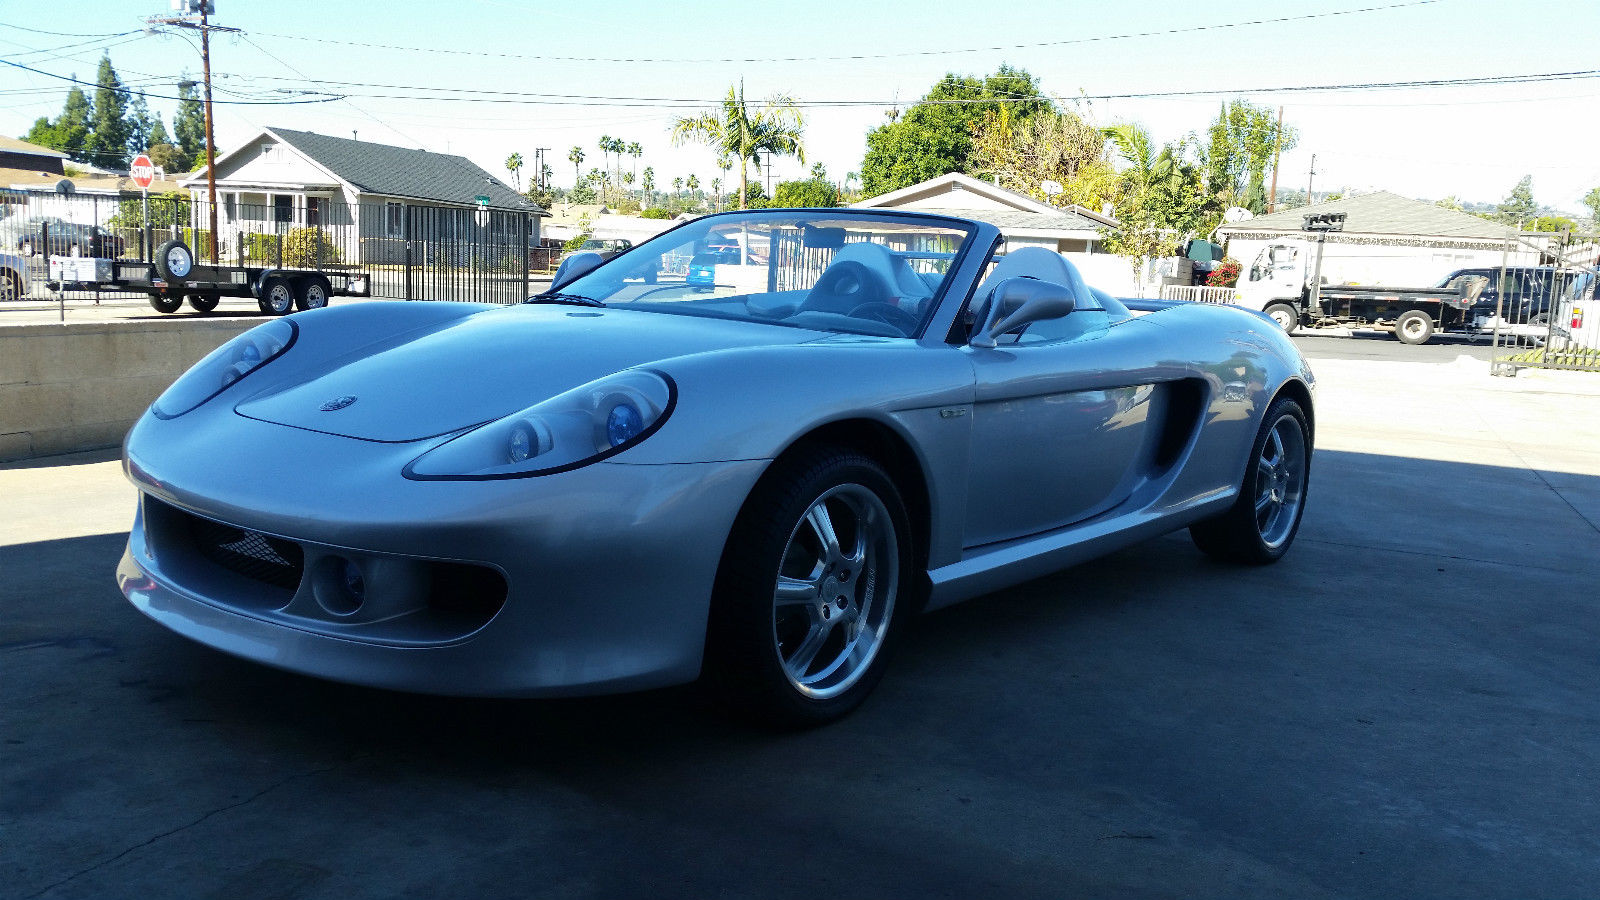 Porsche Carrera GT replica Show Ready